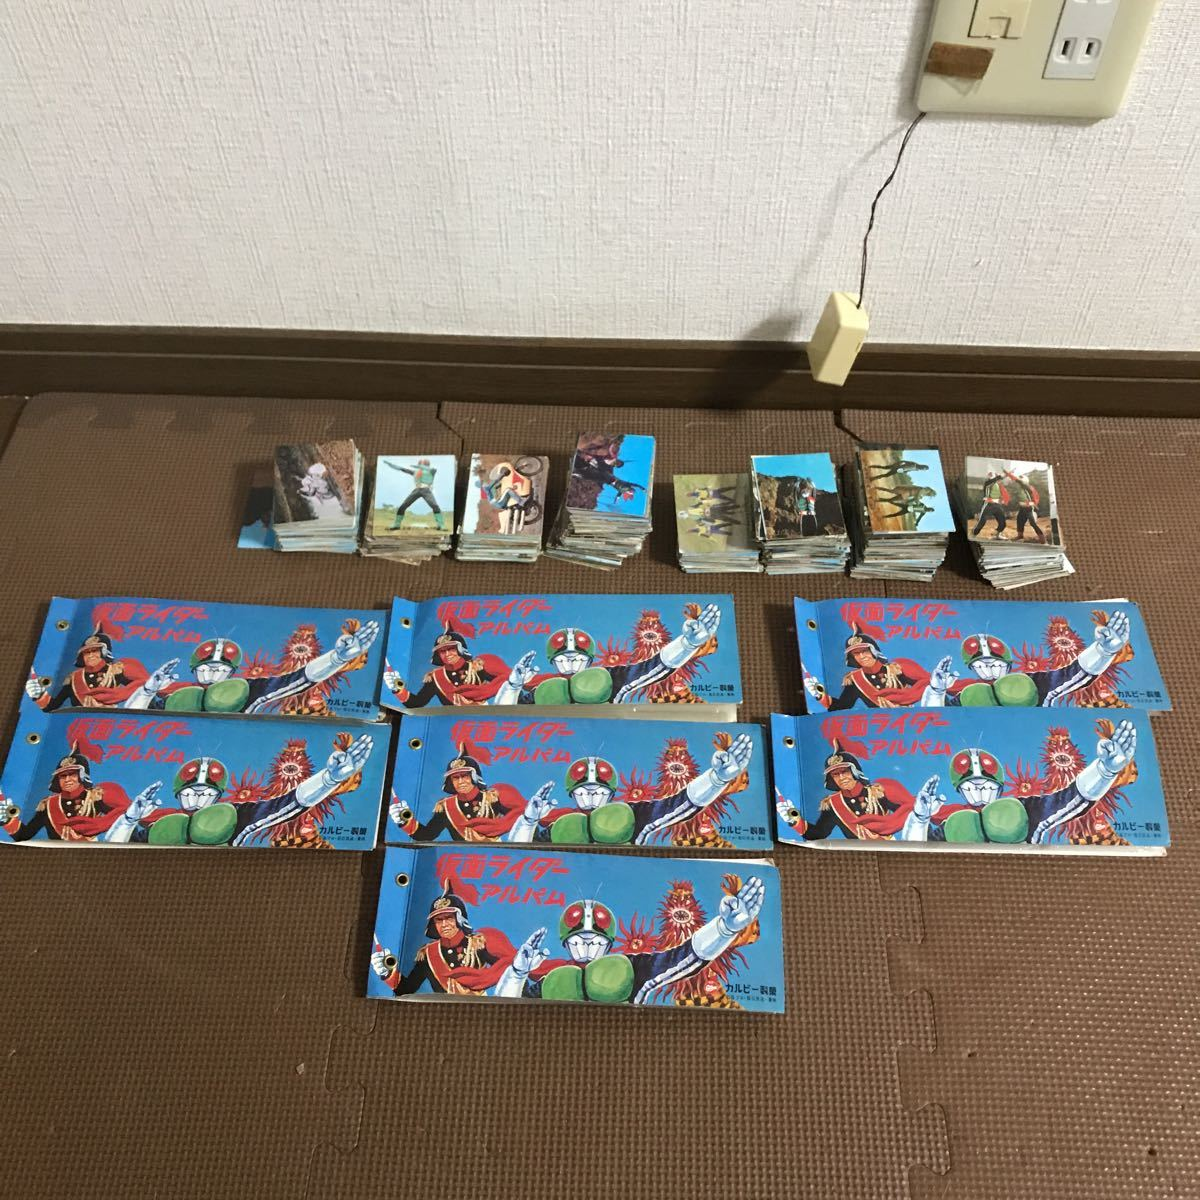 That Time Thing Kamen Rider Card Set Sale Approximately 490 Sheets